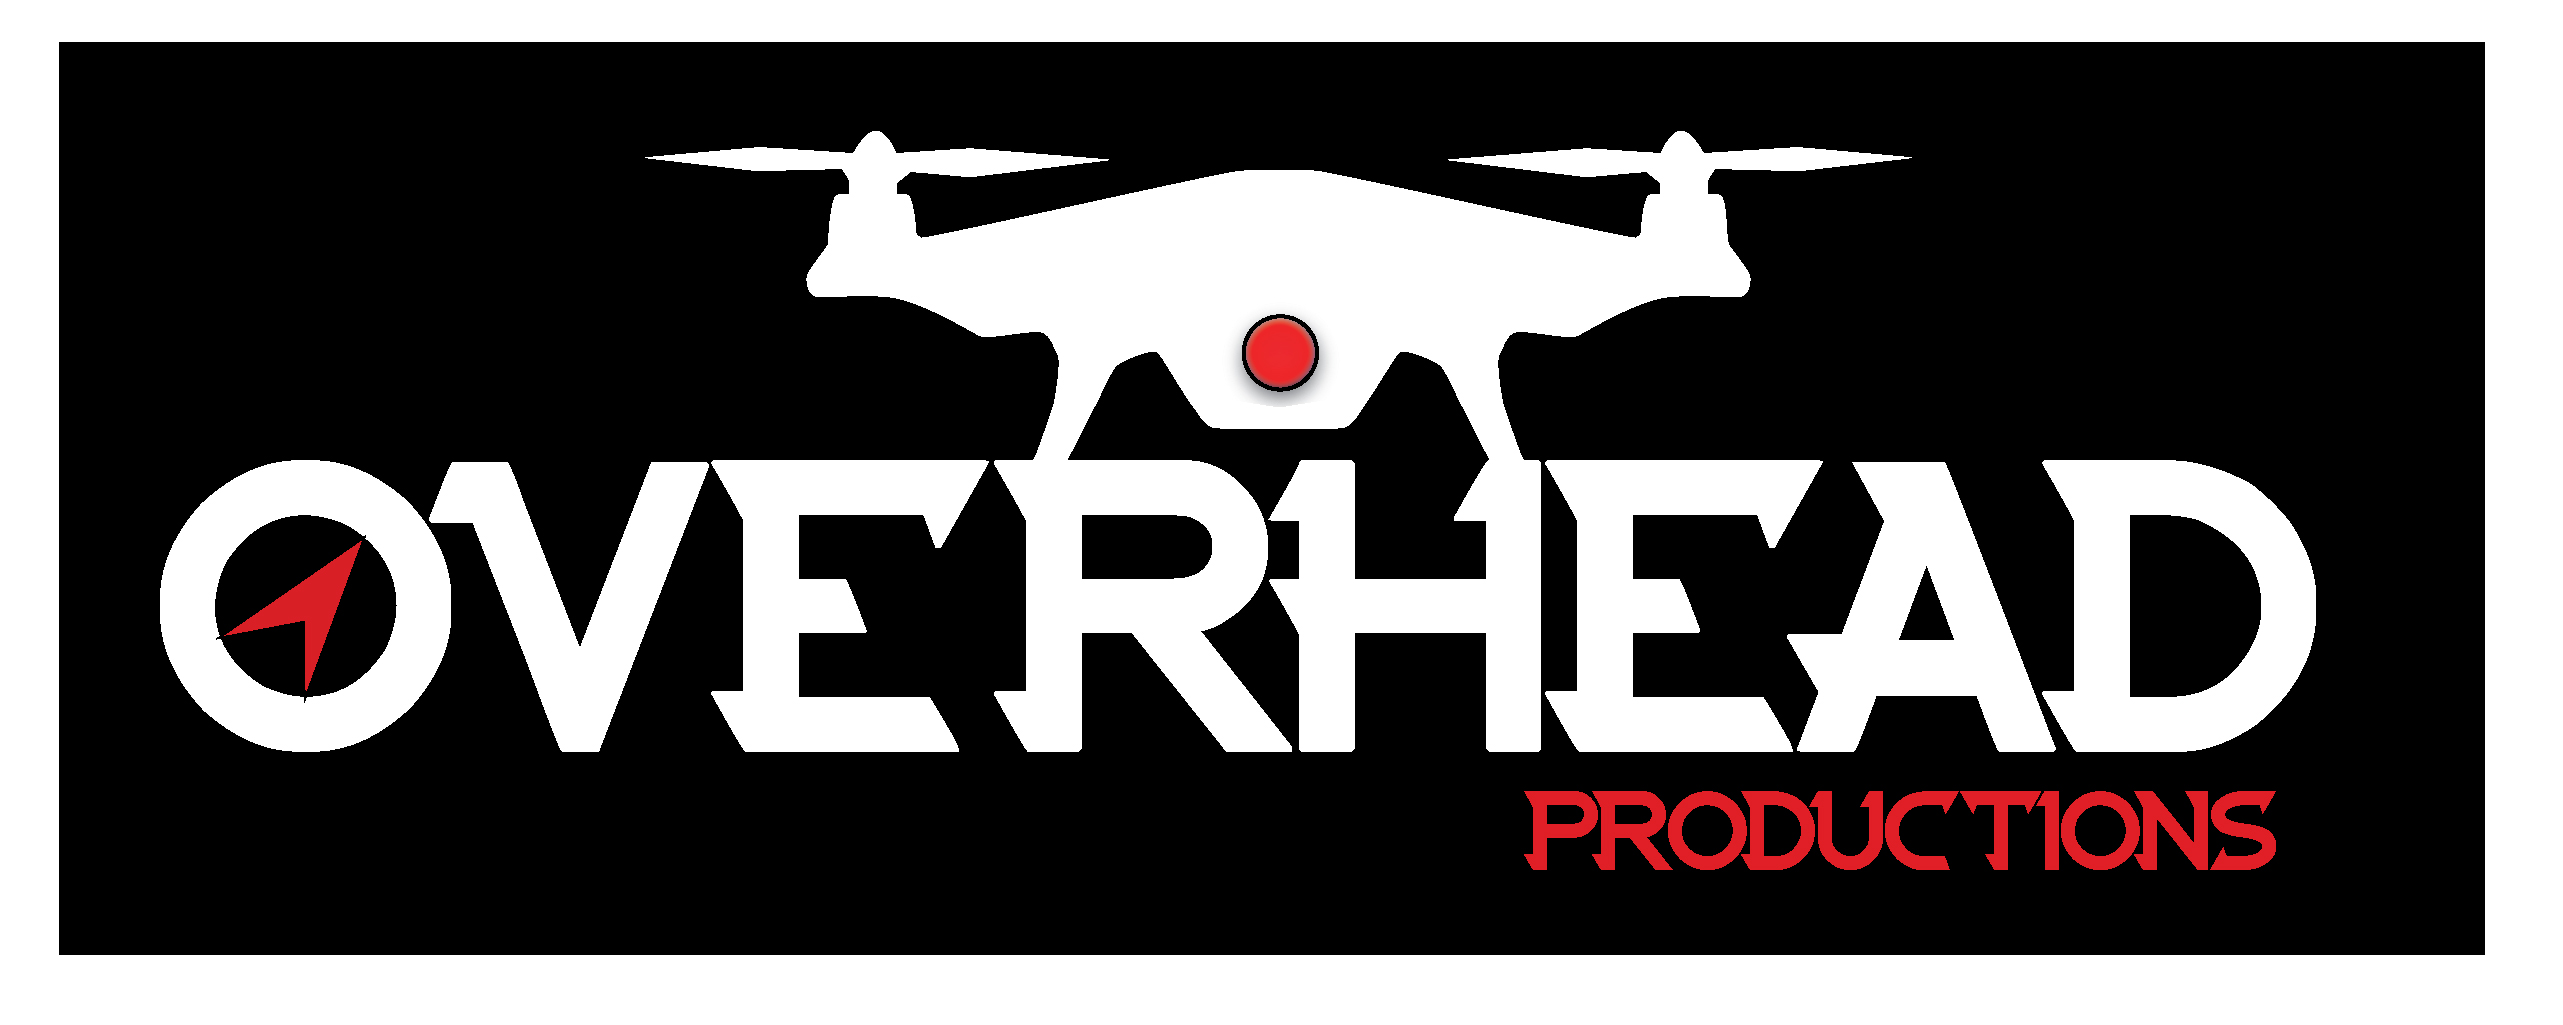 Overhead Productions Text Logo